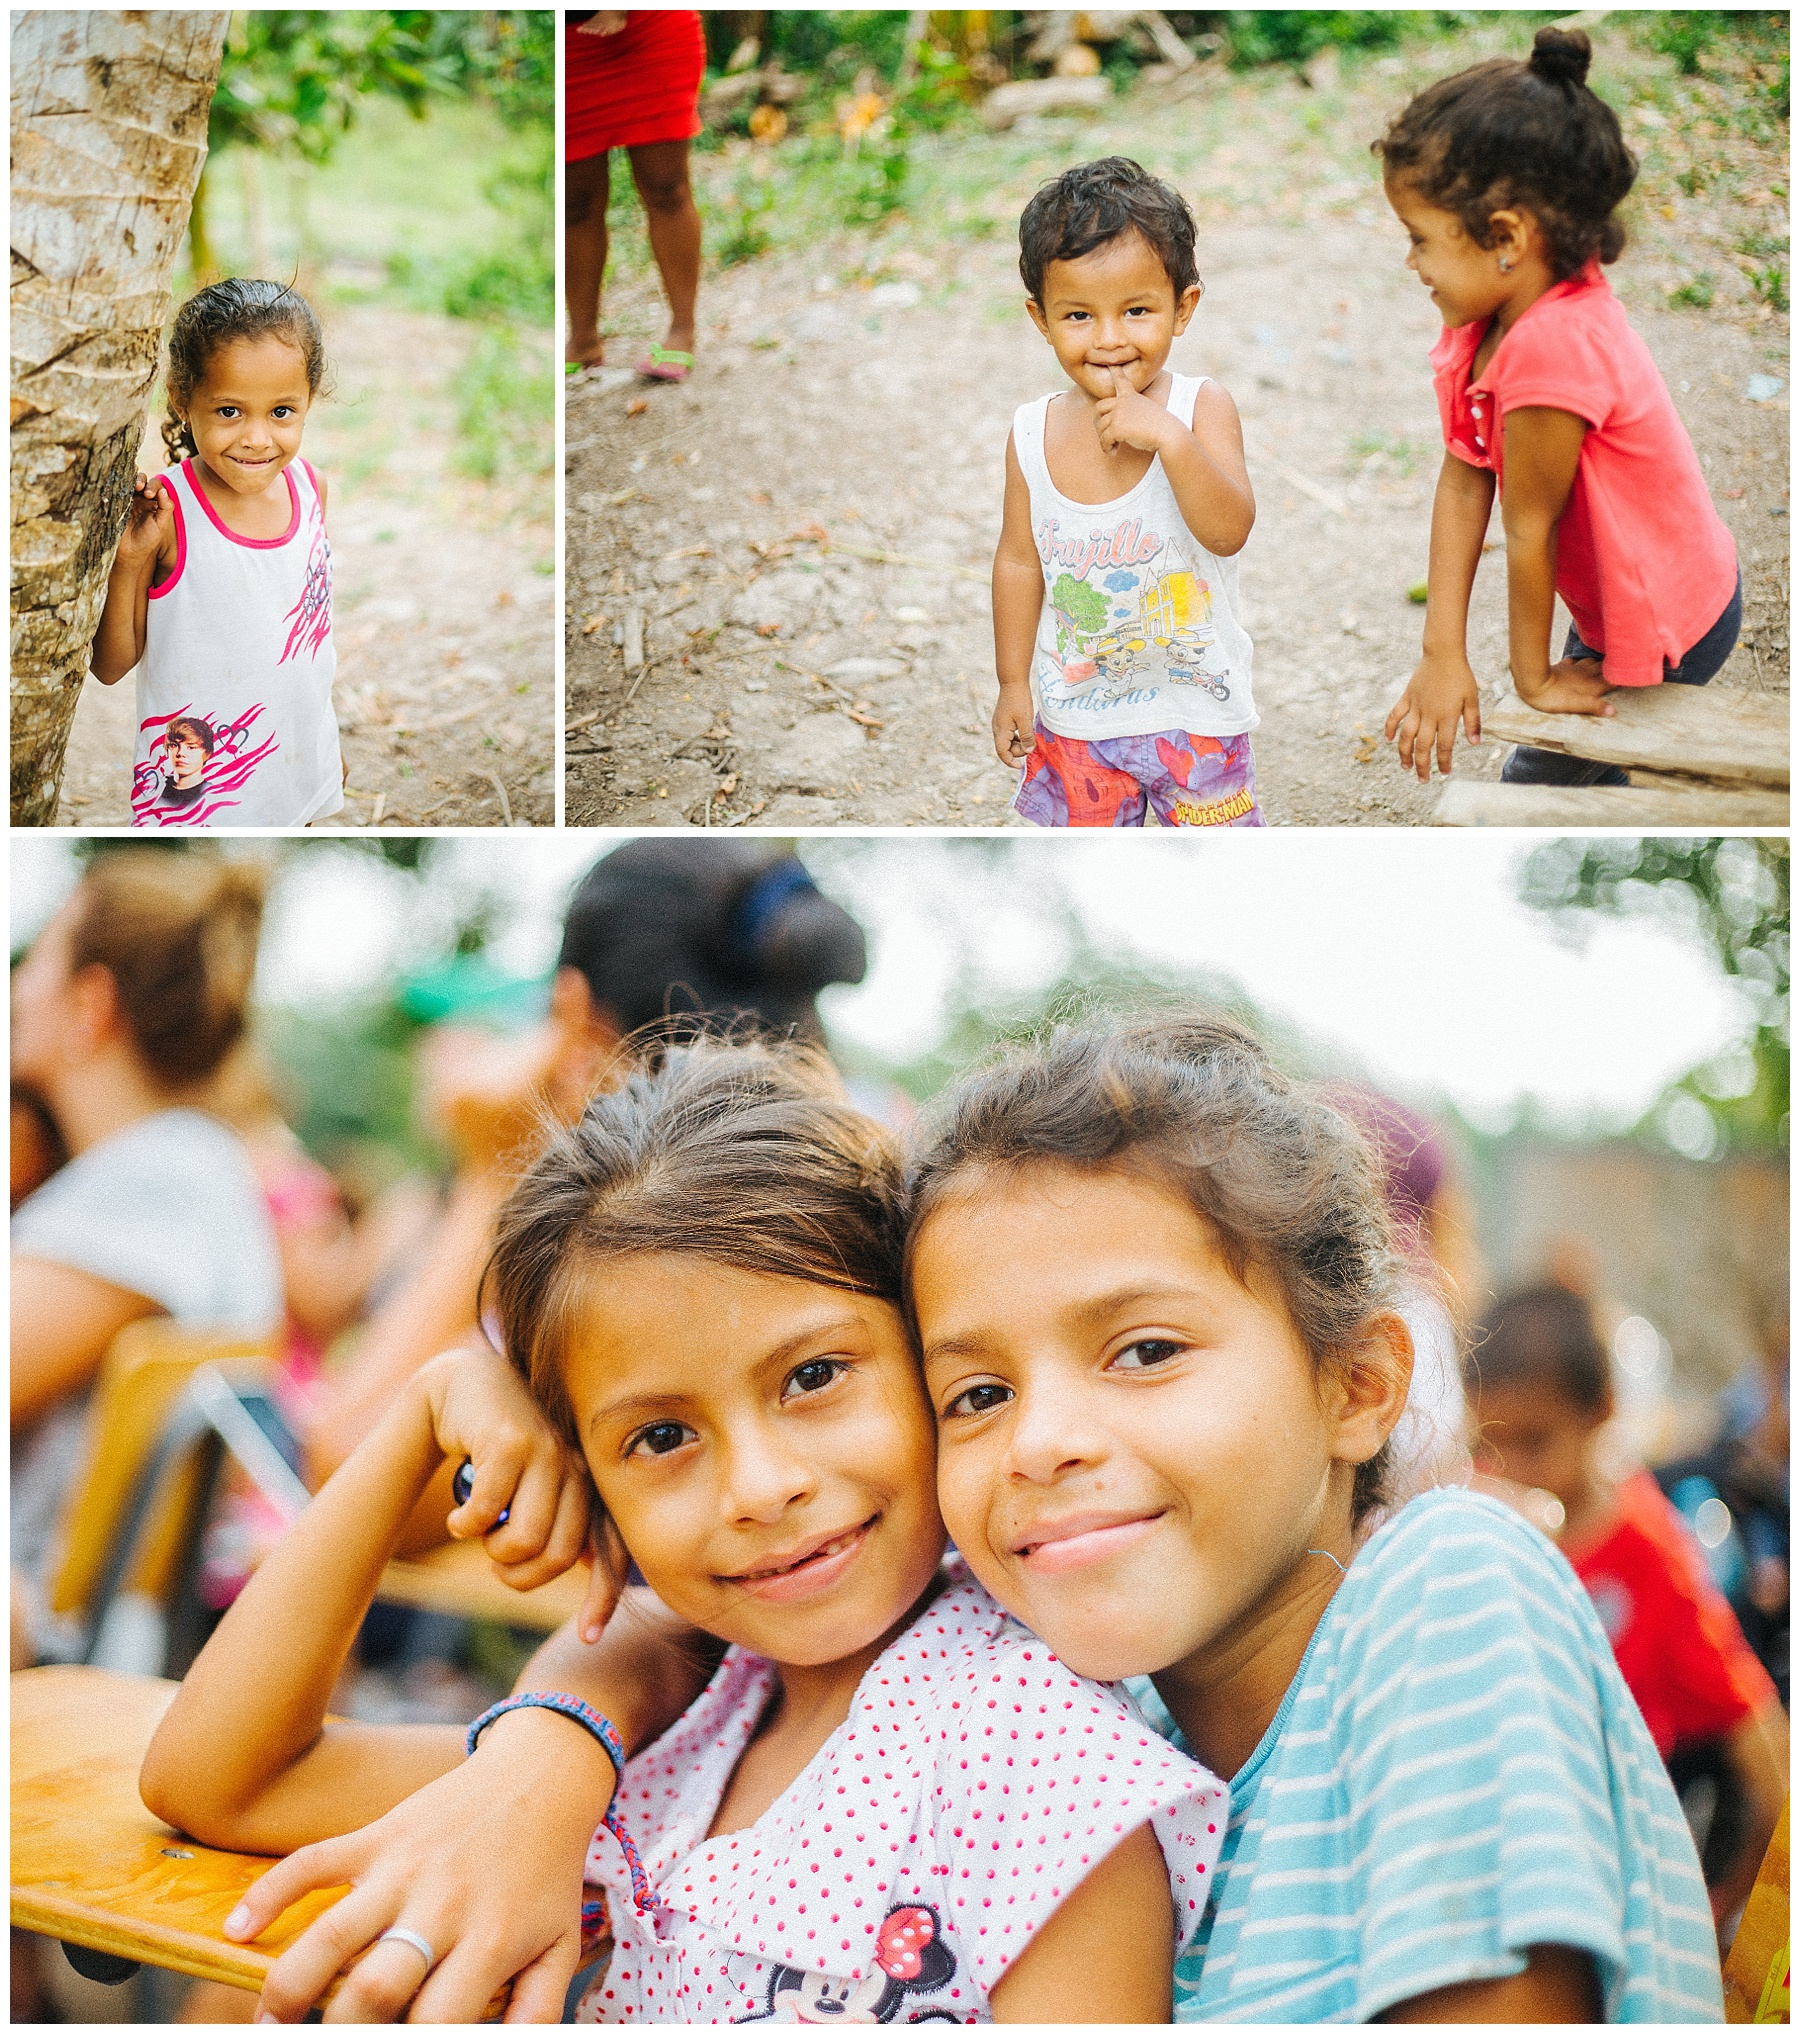 These sweet faces are what matter most. Giving them hope for brighter futures.Photos:  RP Imagery /  @r_petey